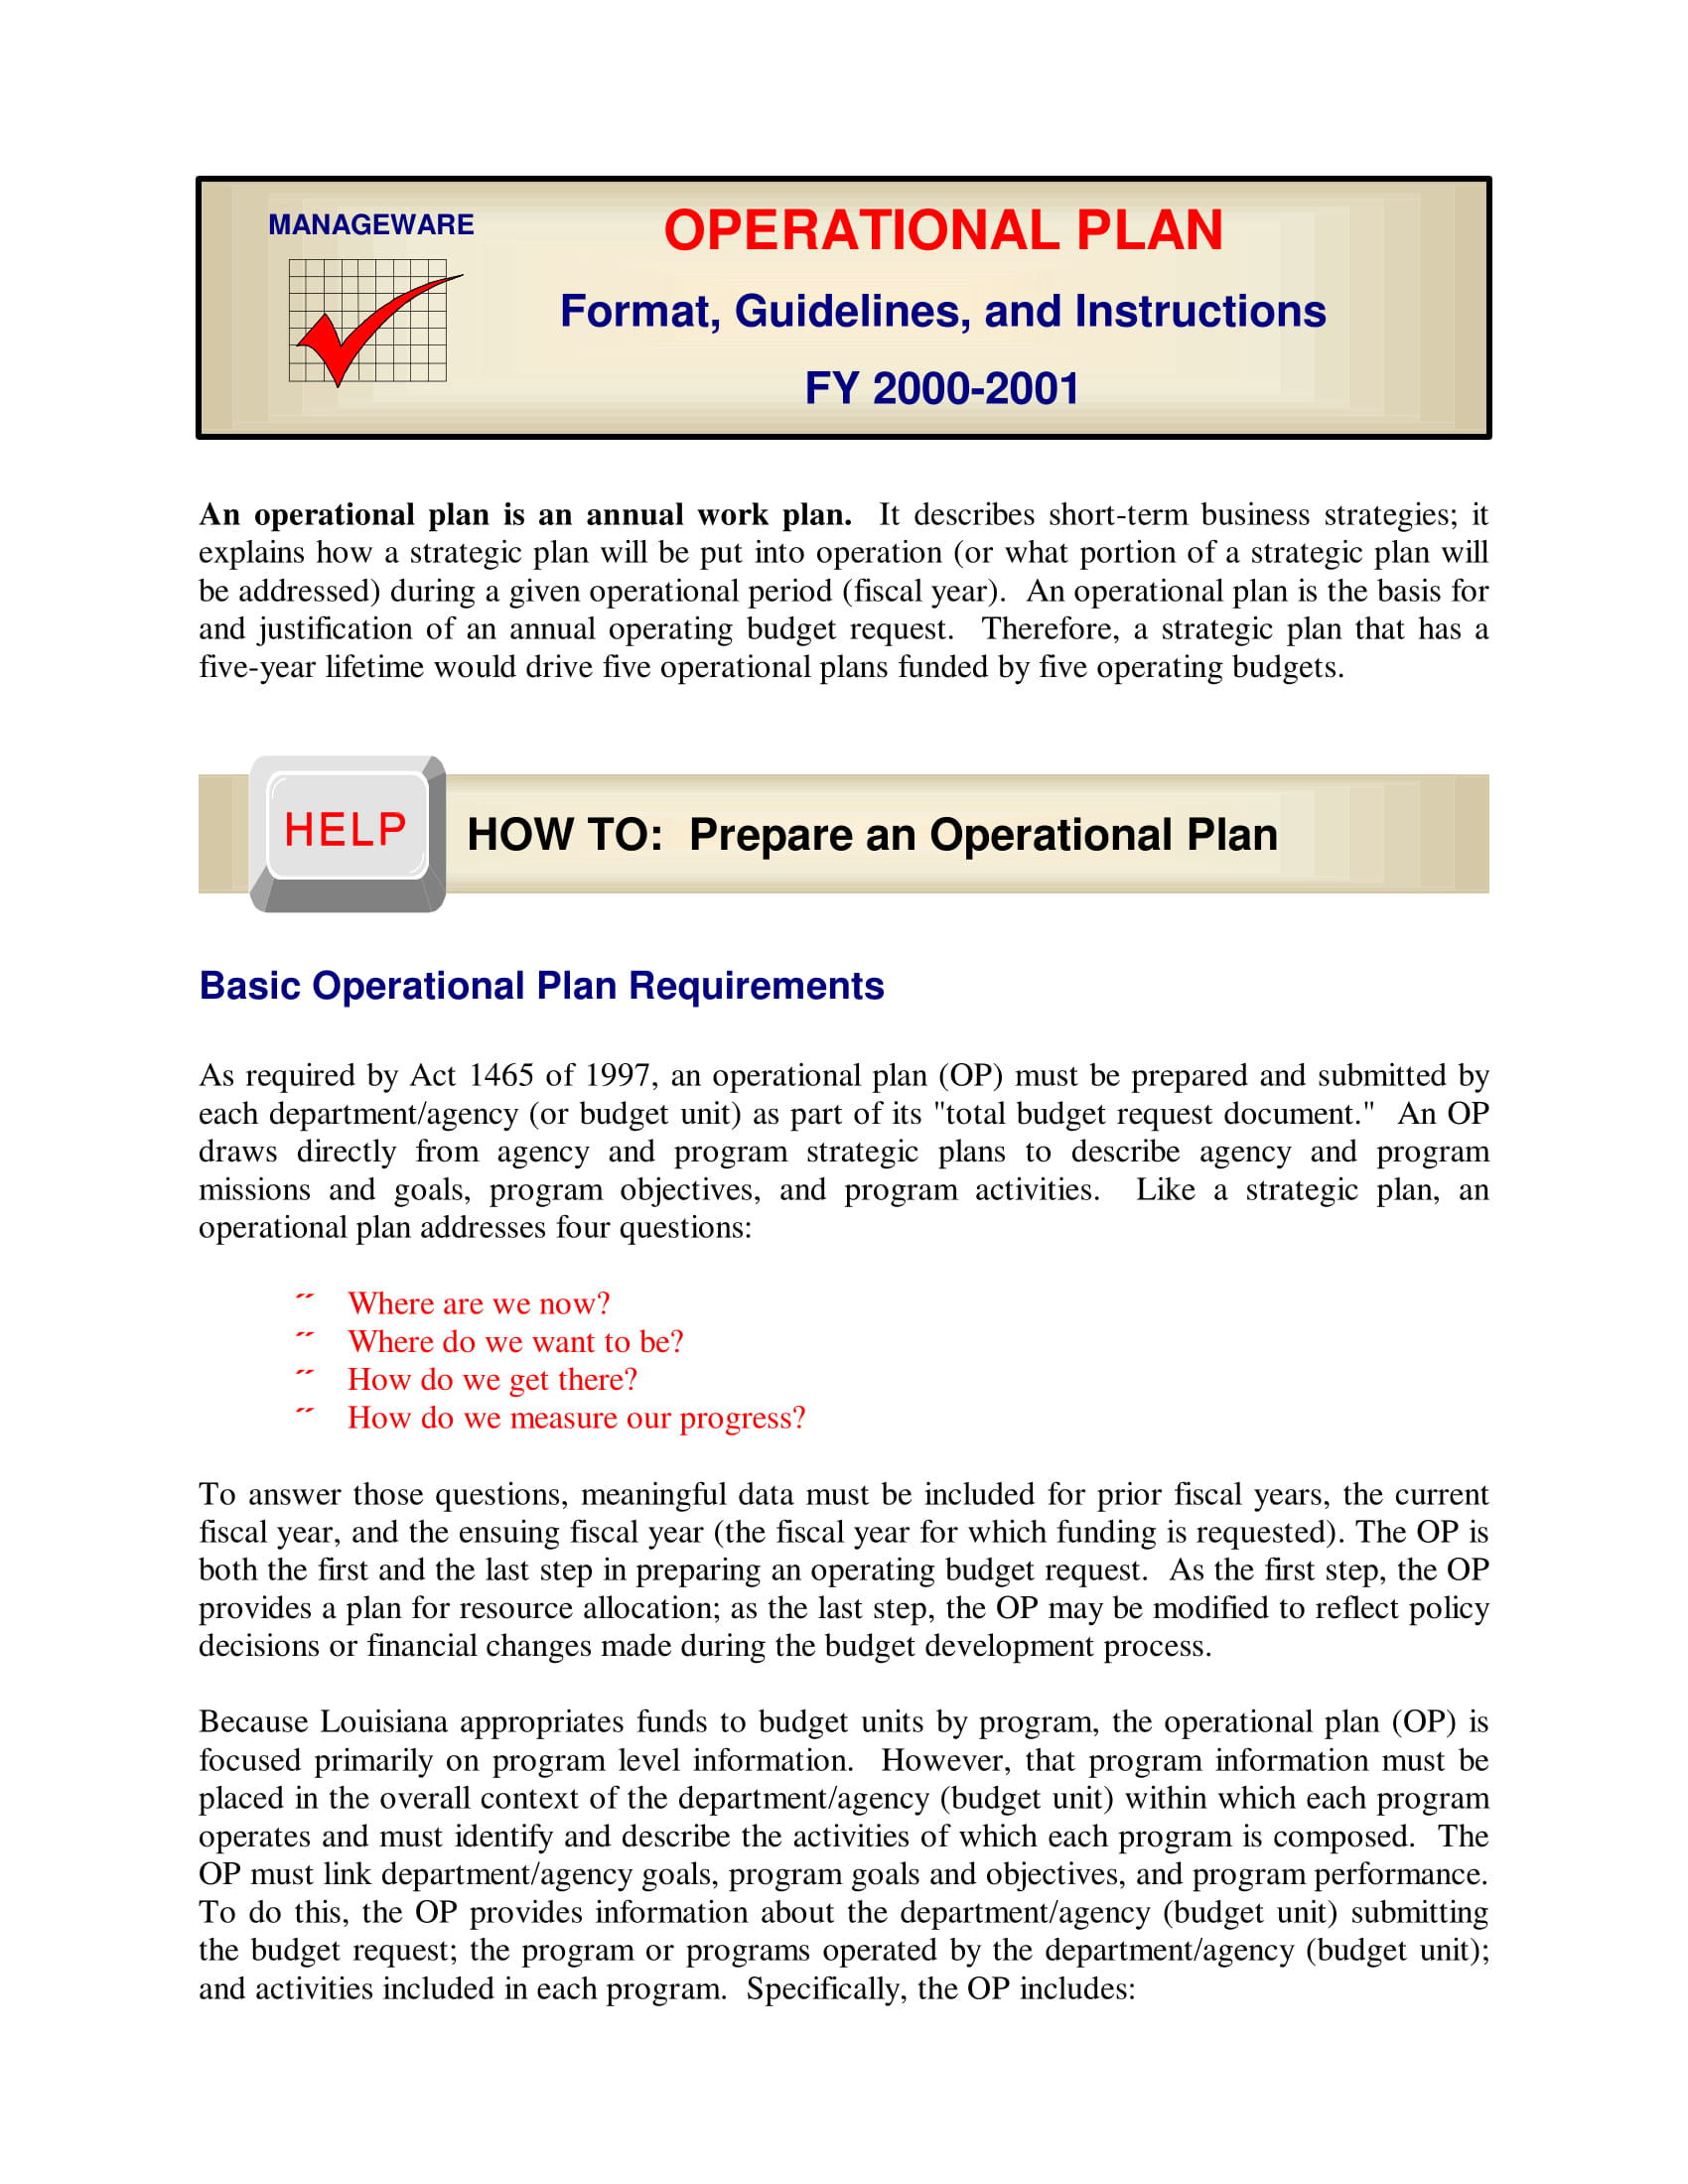 format guidelines and instructions for an operational plan for a business plan example 01